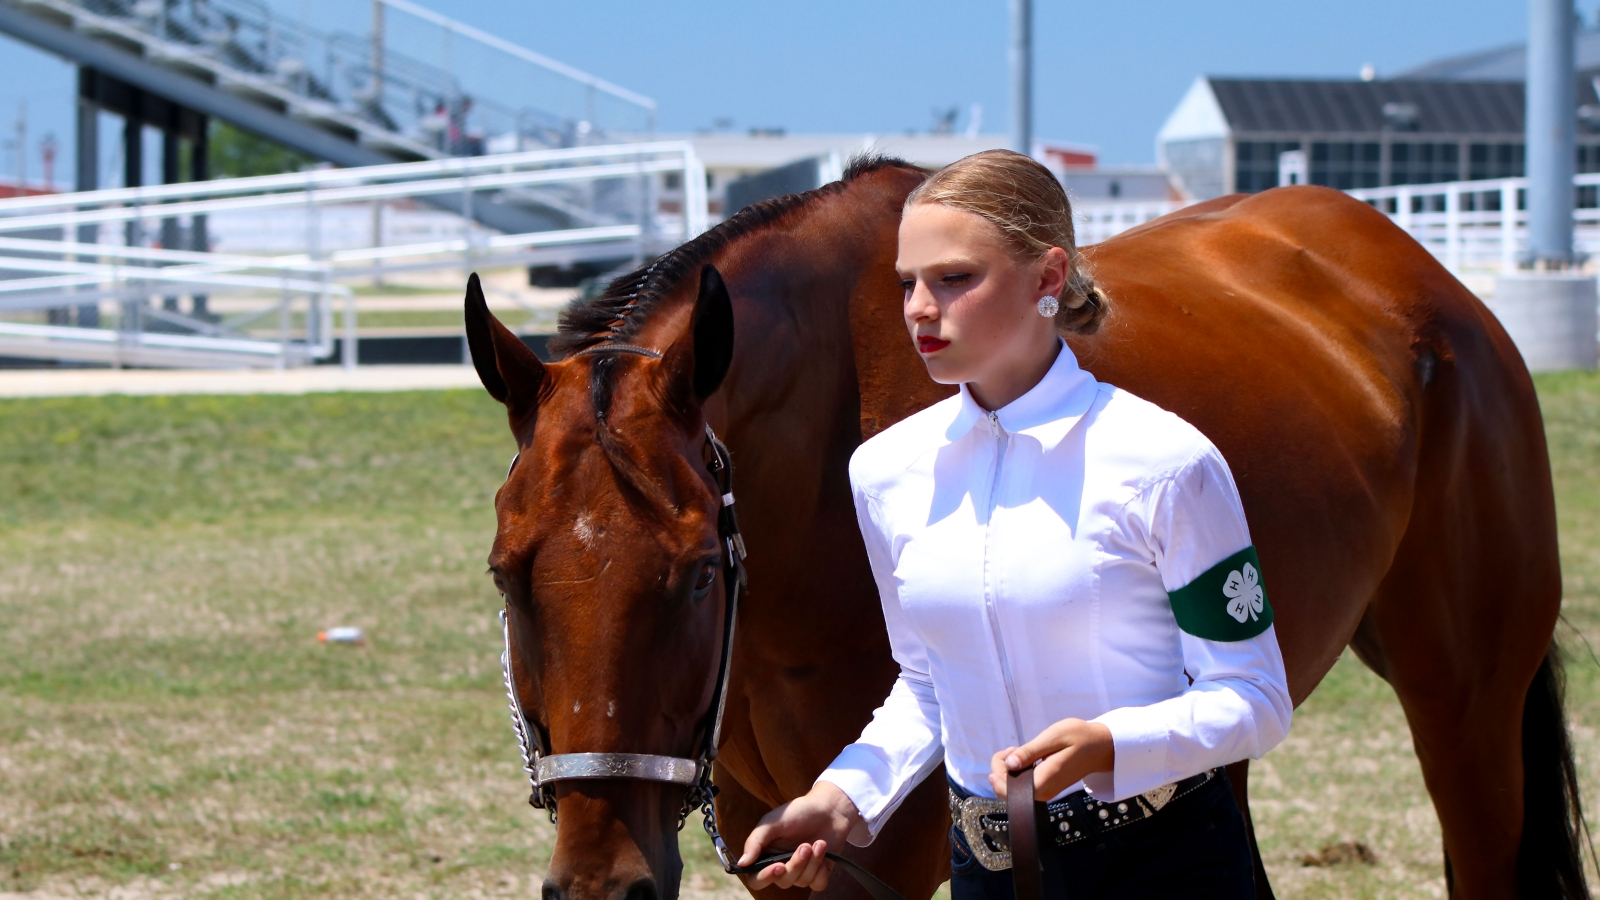 4-H girl walking with a brown horse